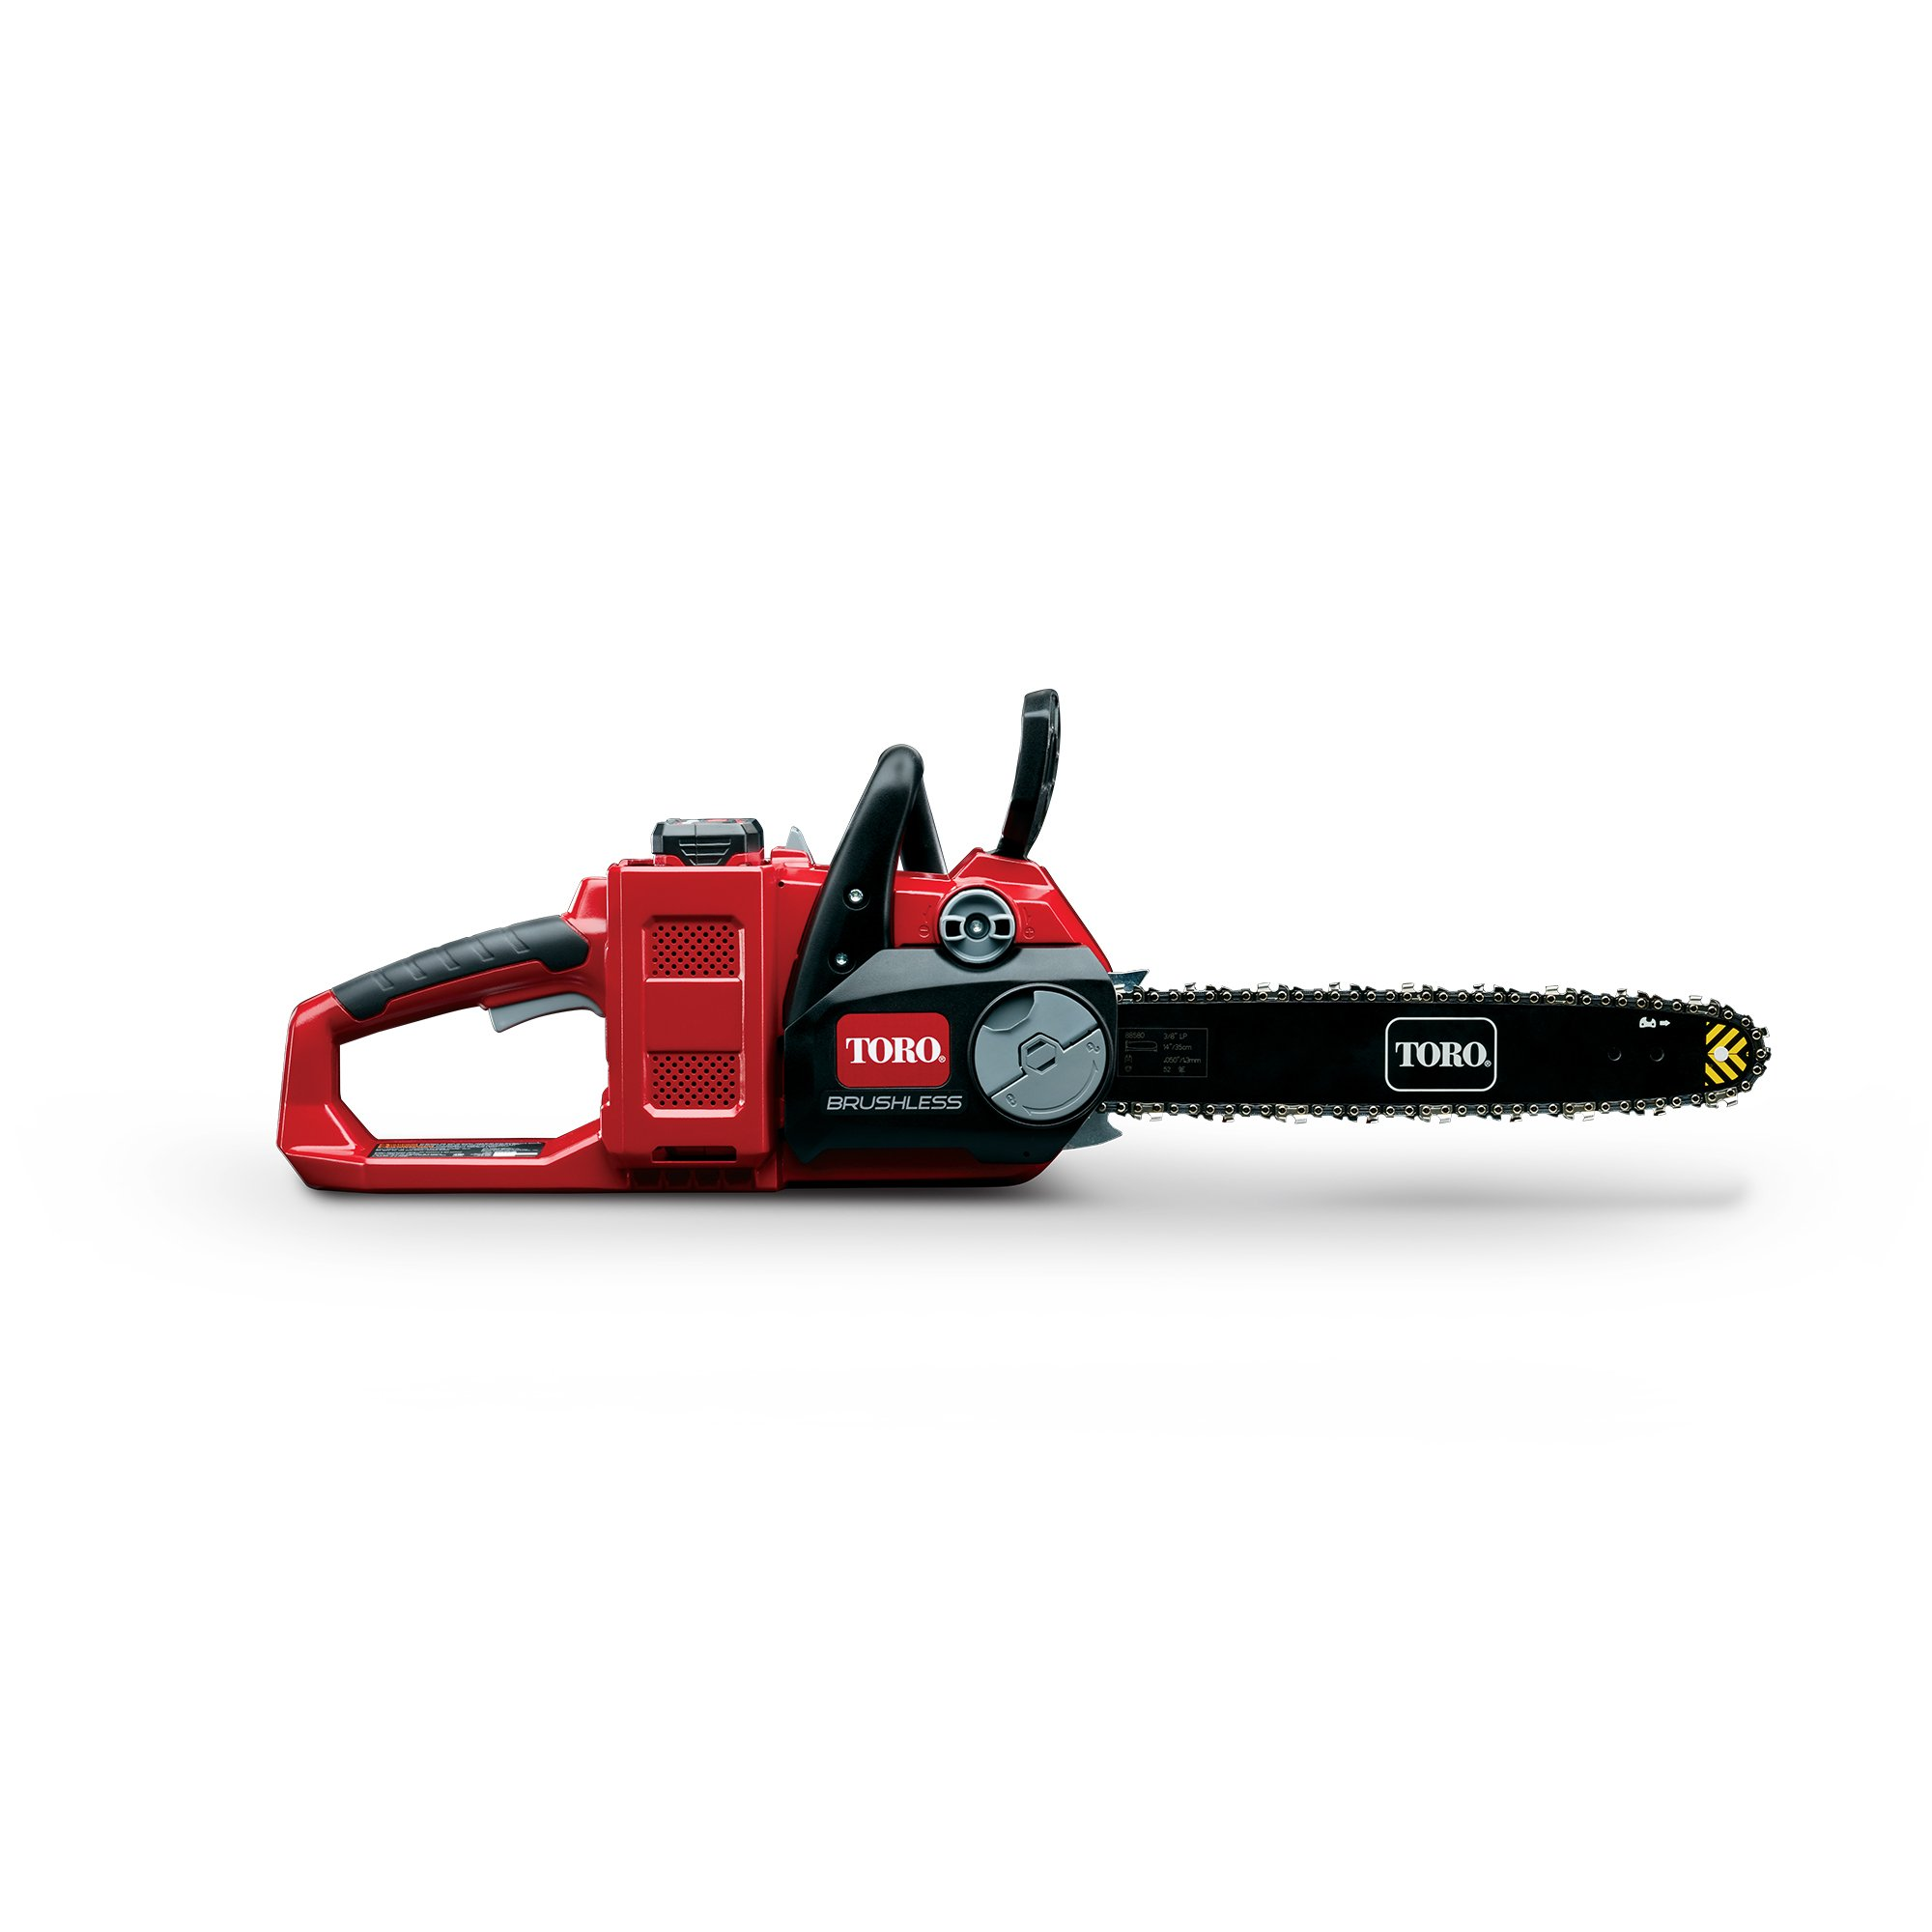 Toro PowerPlex 51880 Brushless 40V MAX Lithium Ion 14'' Cordless Chainsaw, 2.5 Ah Battery & Charger Included